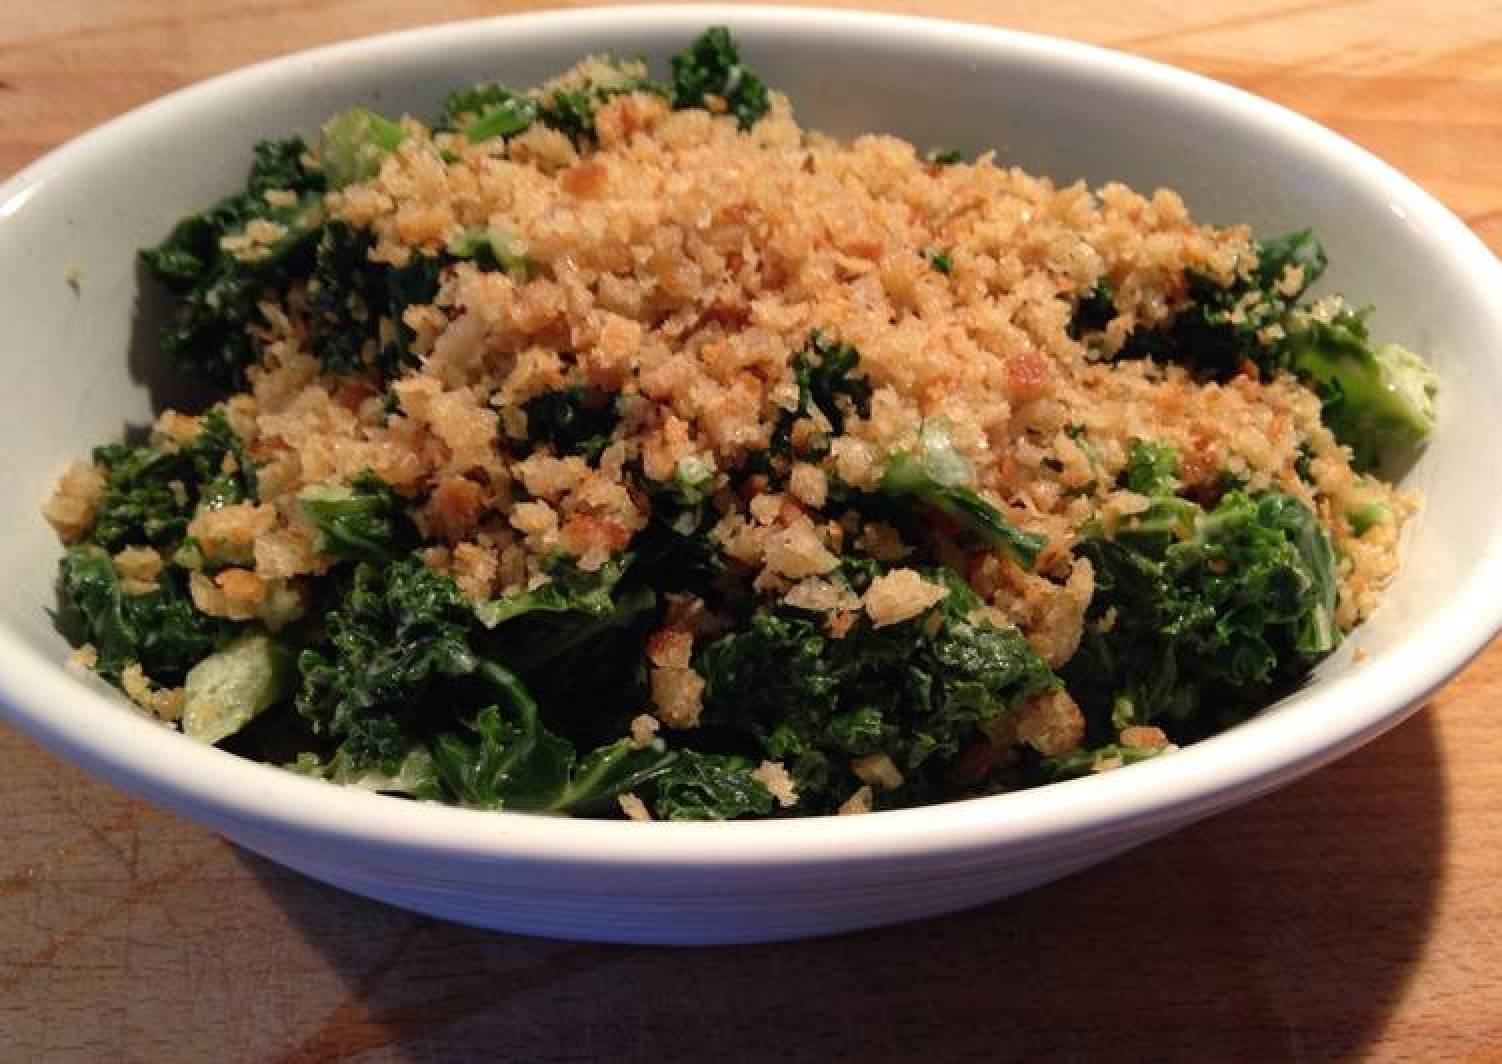 Curly Kale with Cream and Crispy Breadcrumbs